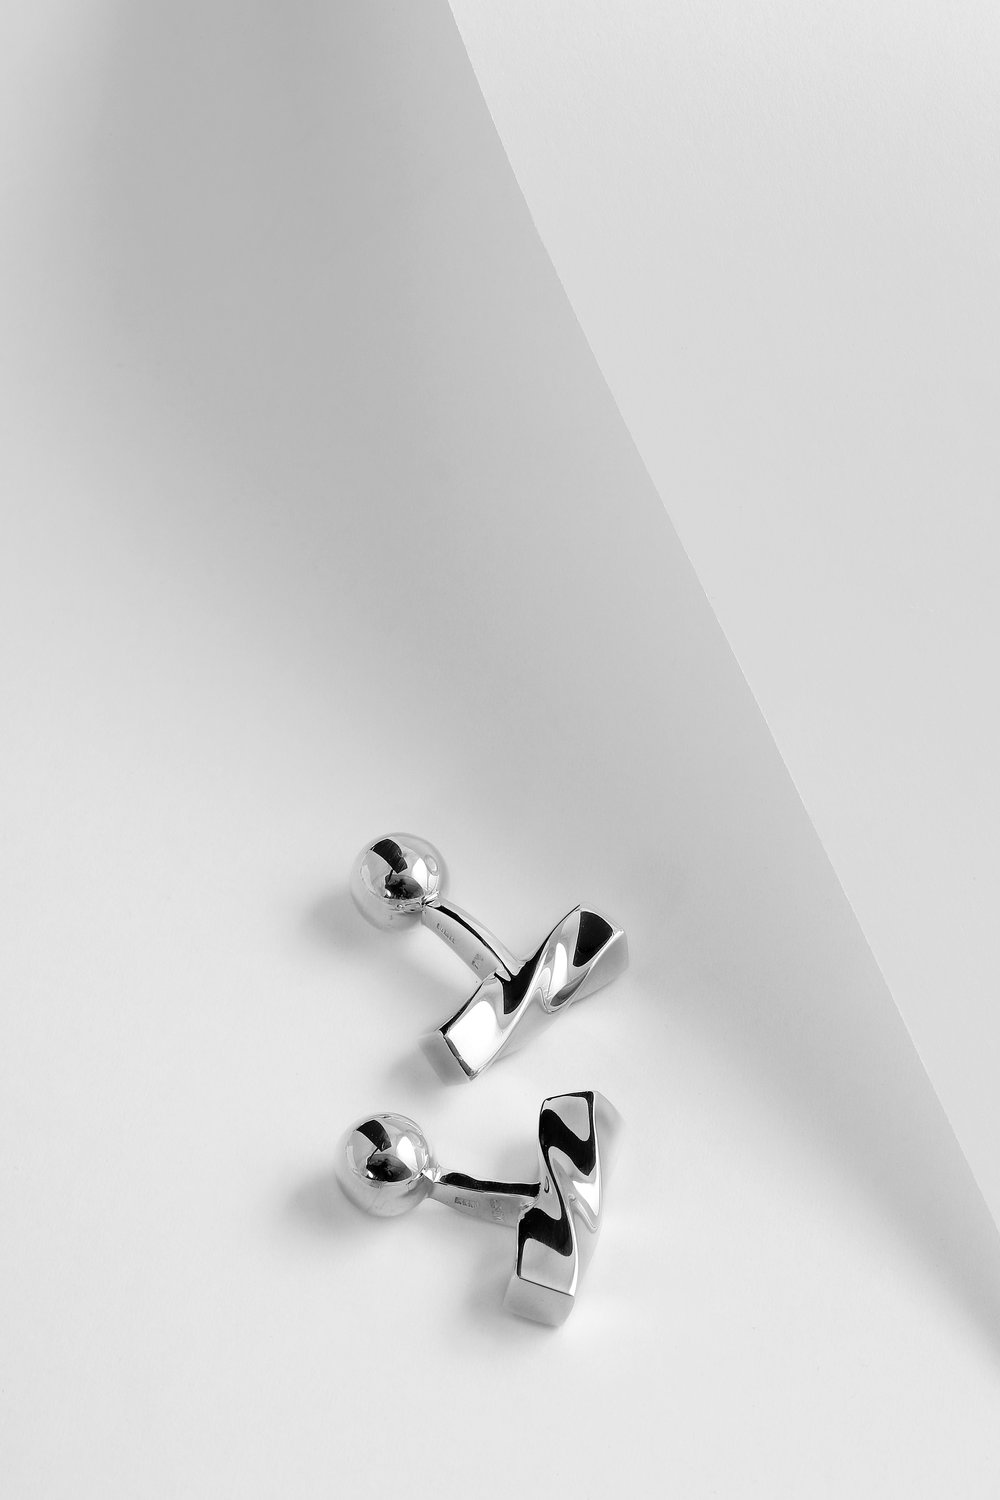 Helix+by+Joel+Escalona+for+Tane—+Photo+by+Mariana+Achach—04.jpg